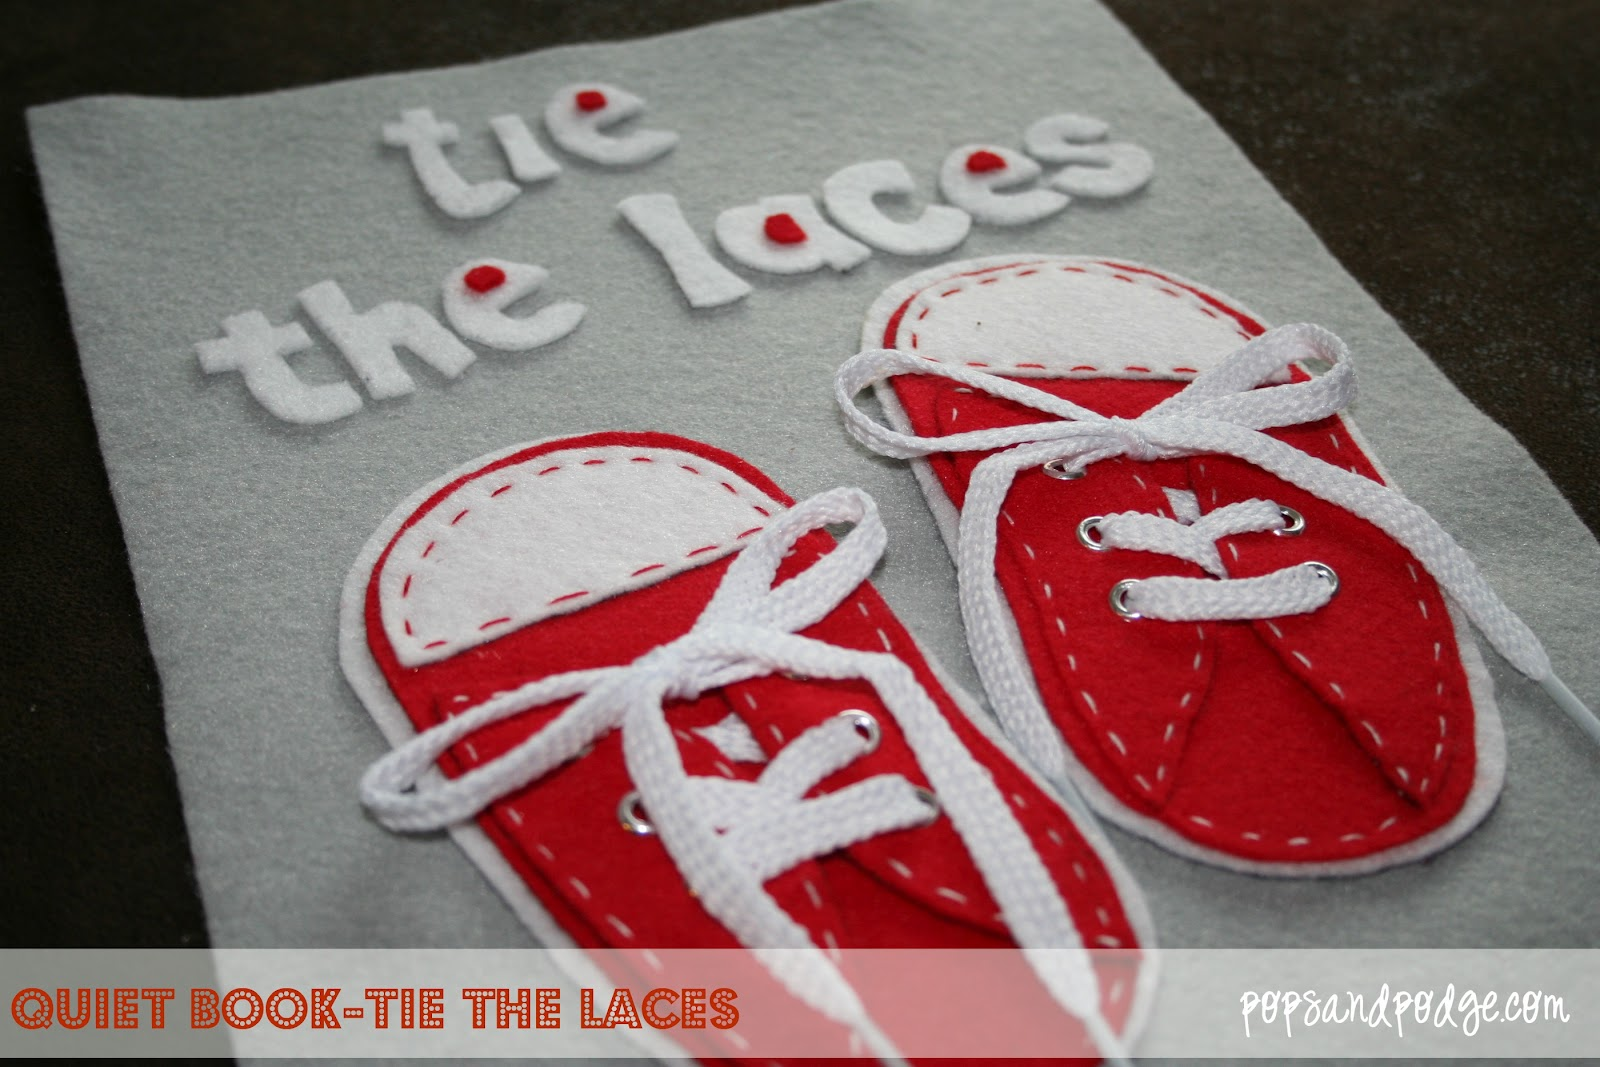 Pops and podge quiet book page 3 tie the laces quiet book page 3 tie the laces ccuart Choice Image